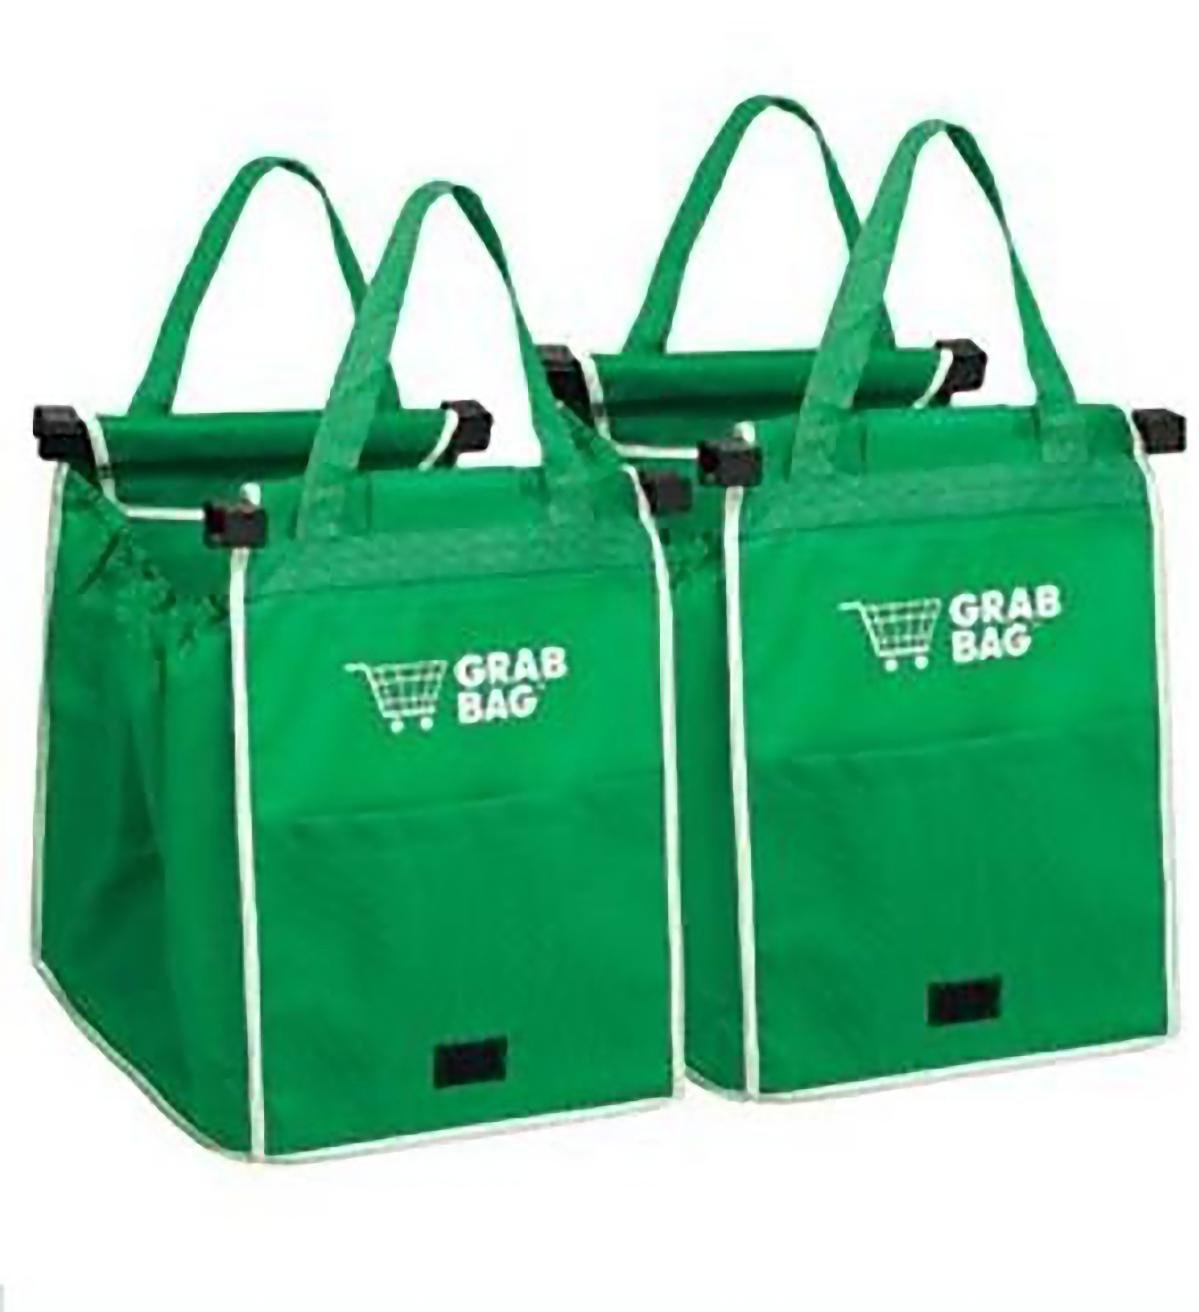 Grab Bag Reusable Grocery Bag